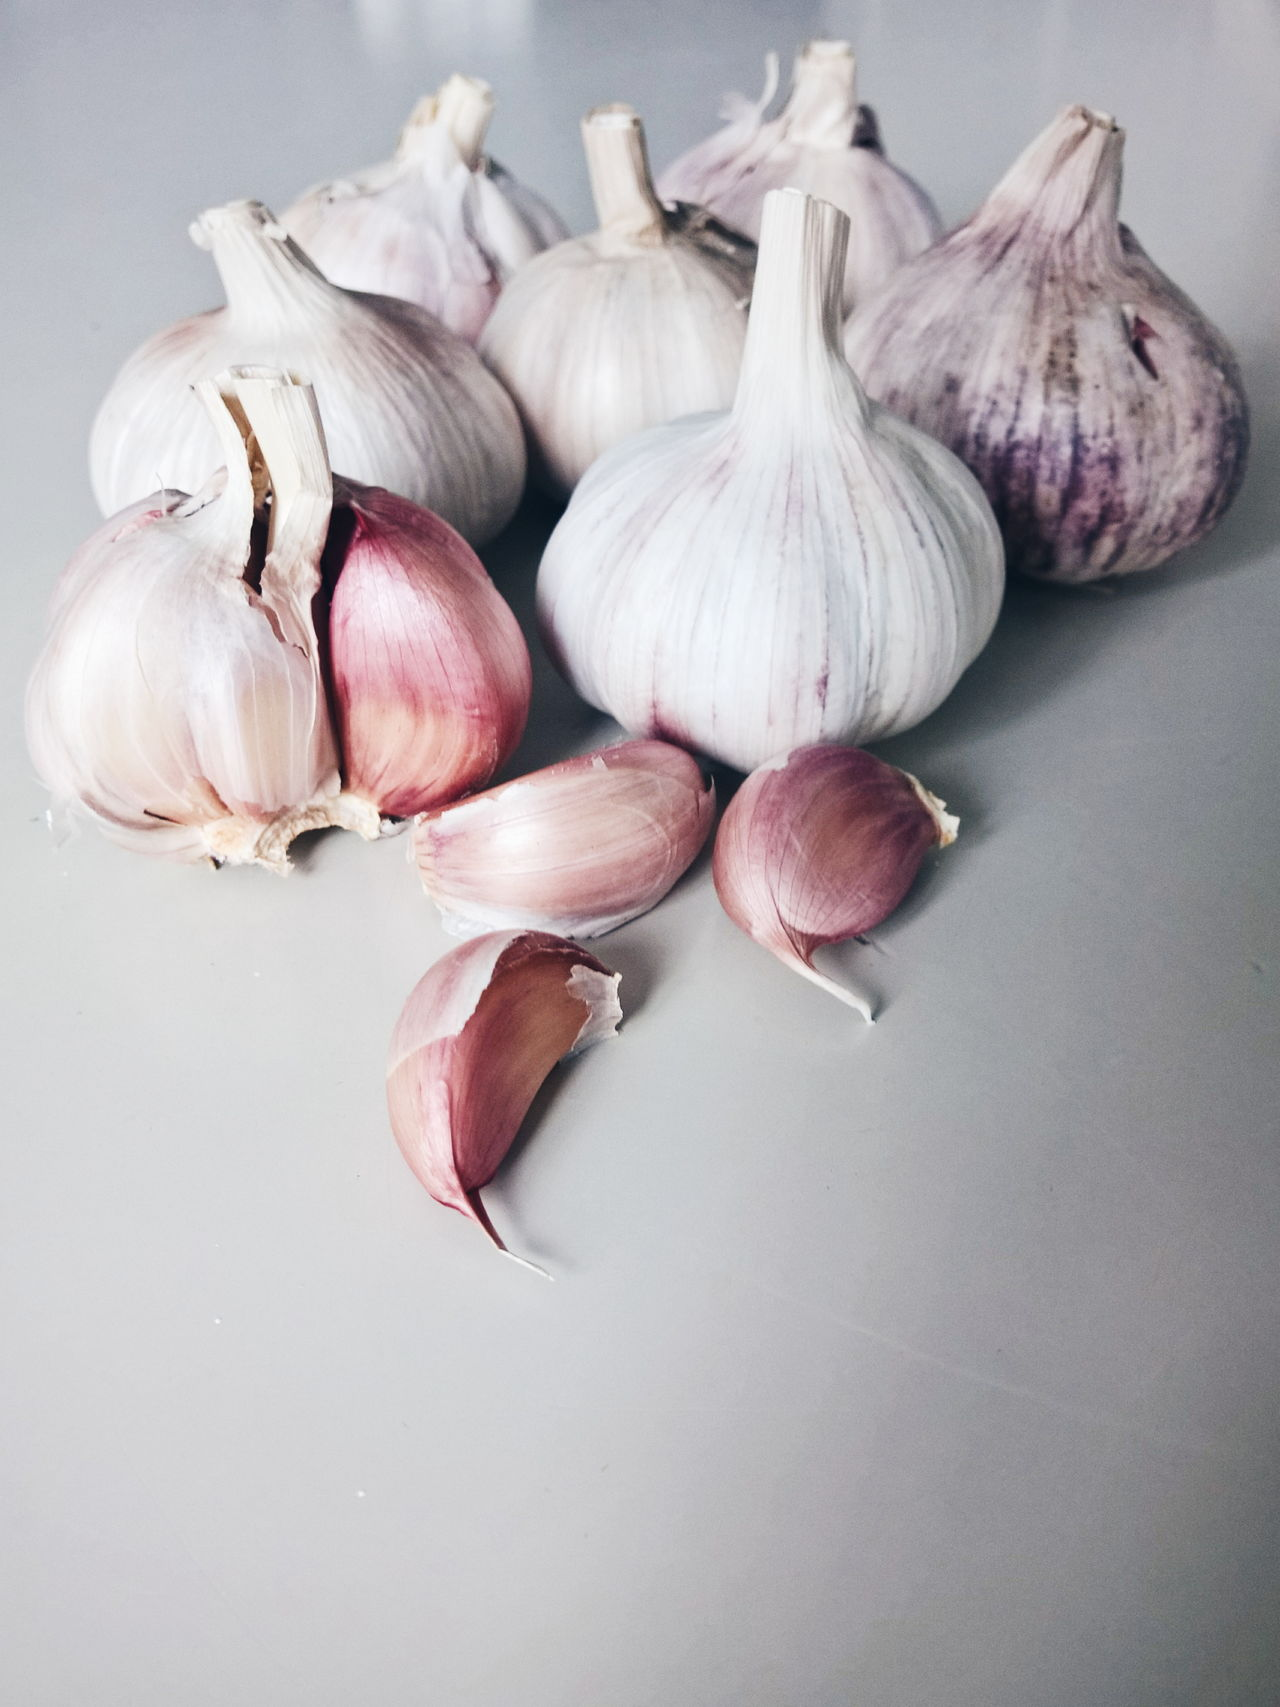 Garlic Brown Close Up Close-up Comfortable Composition Detail Directly Above Focus On Foreground Freshness Full Frame Large Group Of Objects Natural Pattern No People Organic Part Of Ripe Single Object Still Life Studio Shot Temptation Variation Garlic Naturalcolor  White White Background